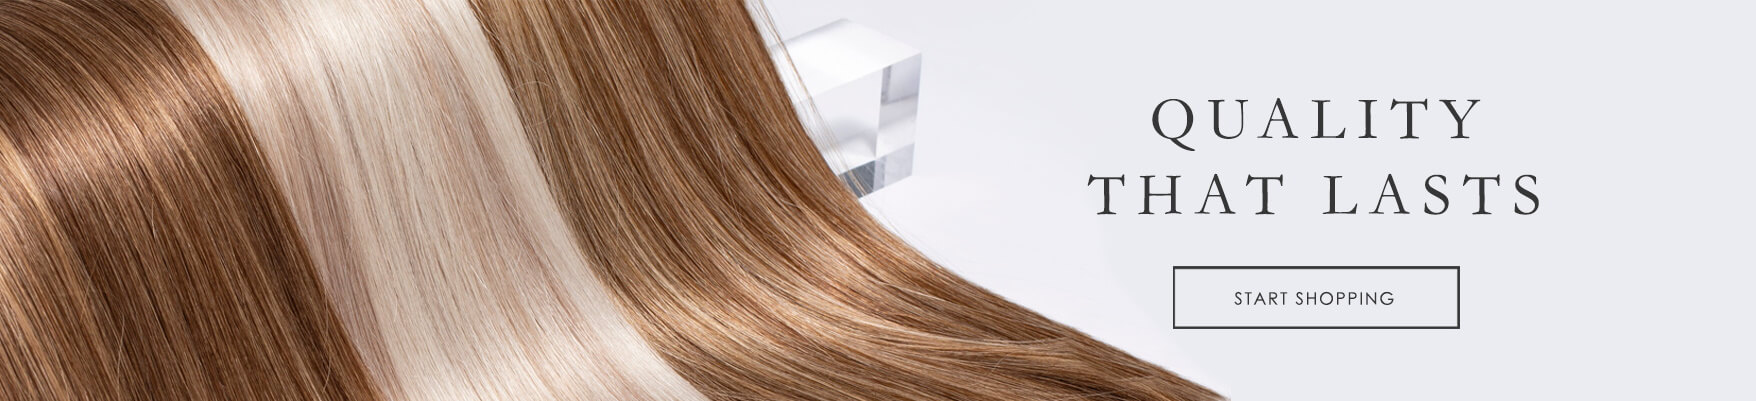 Beauty Works hair extensions - Quality that lasts